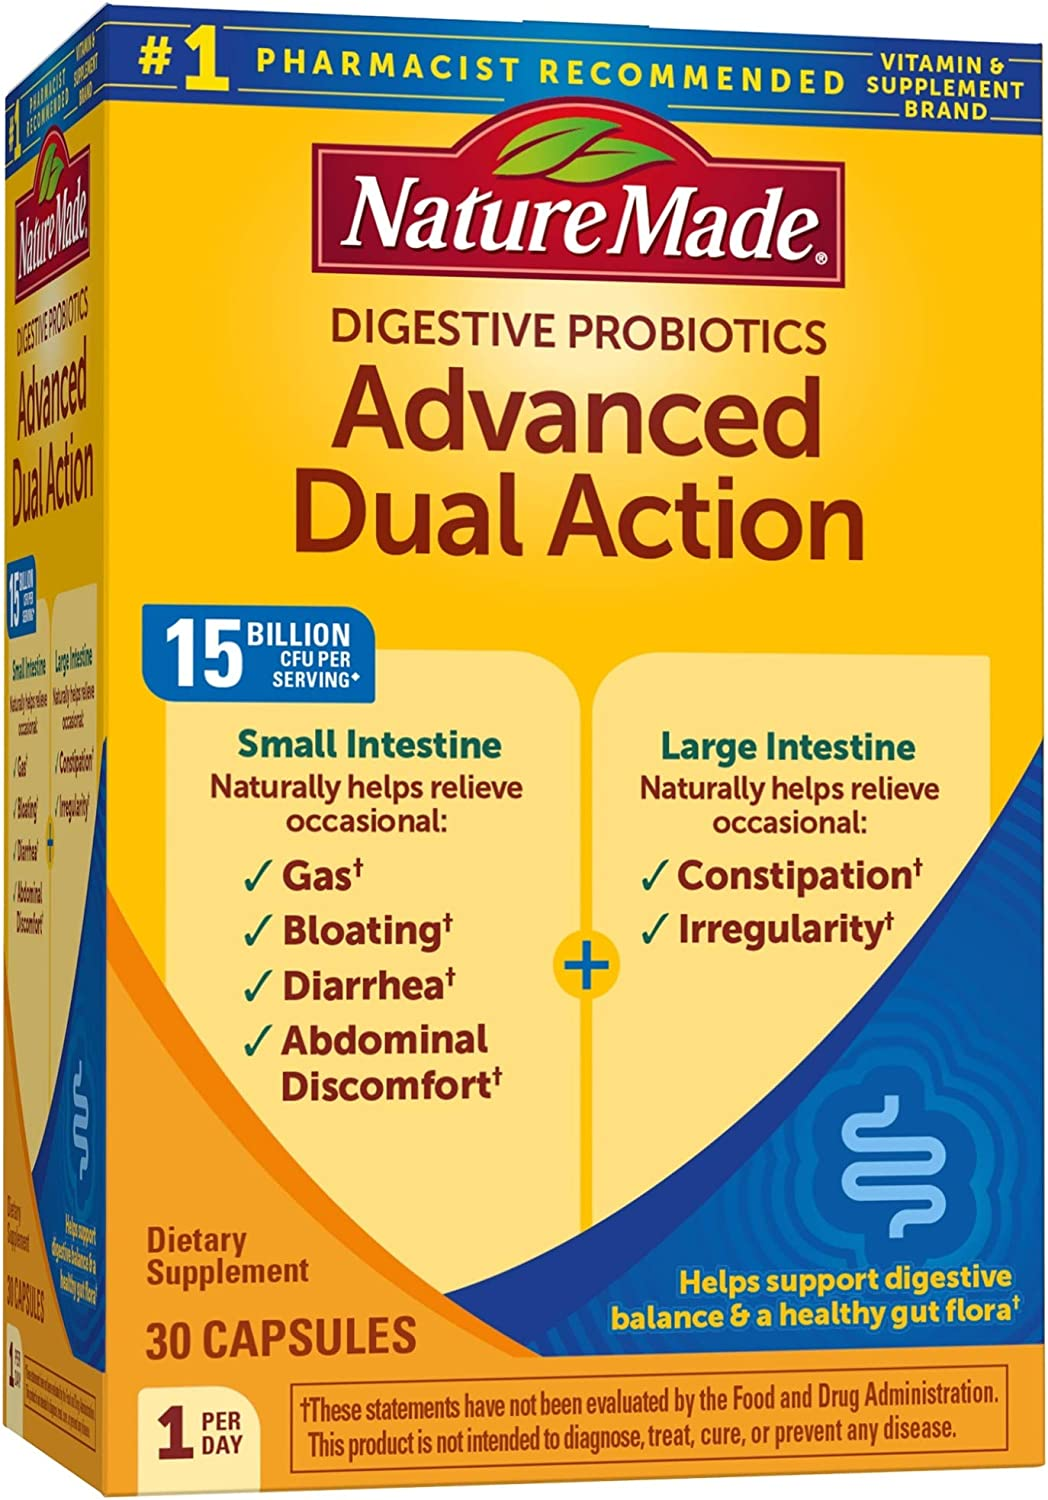 Nature Made Advanced Dual Action Probiotics 15 Billion CFU Per Serving, 30 Capsules, for Gas, Bloating, and Digestive Balance (Packaging May Vary)